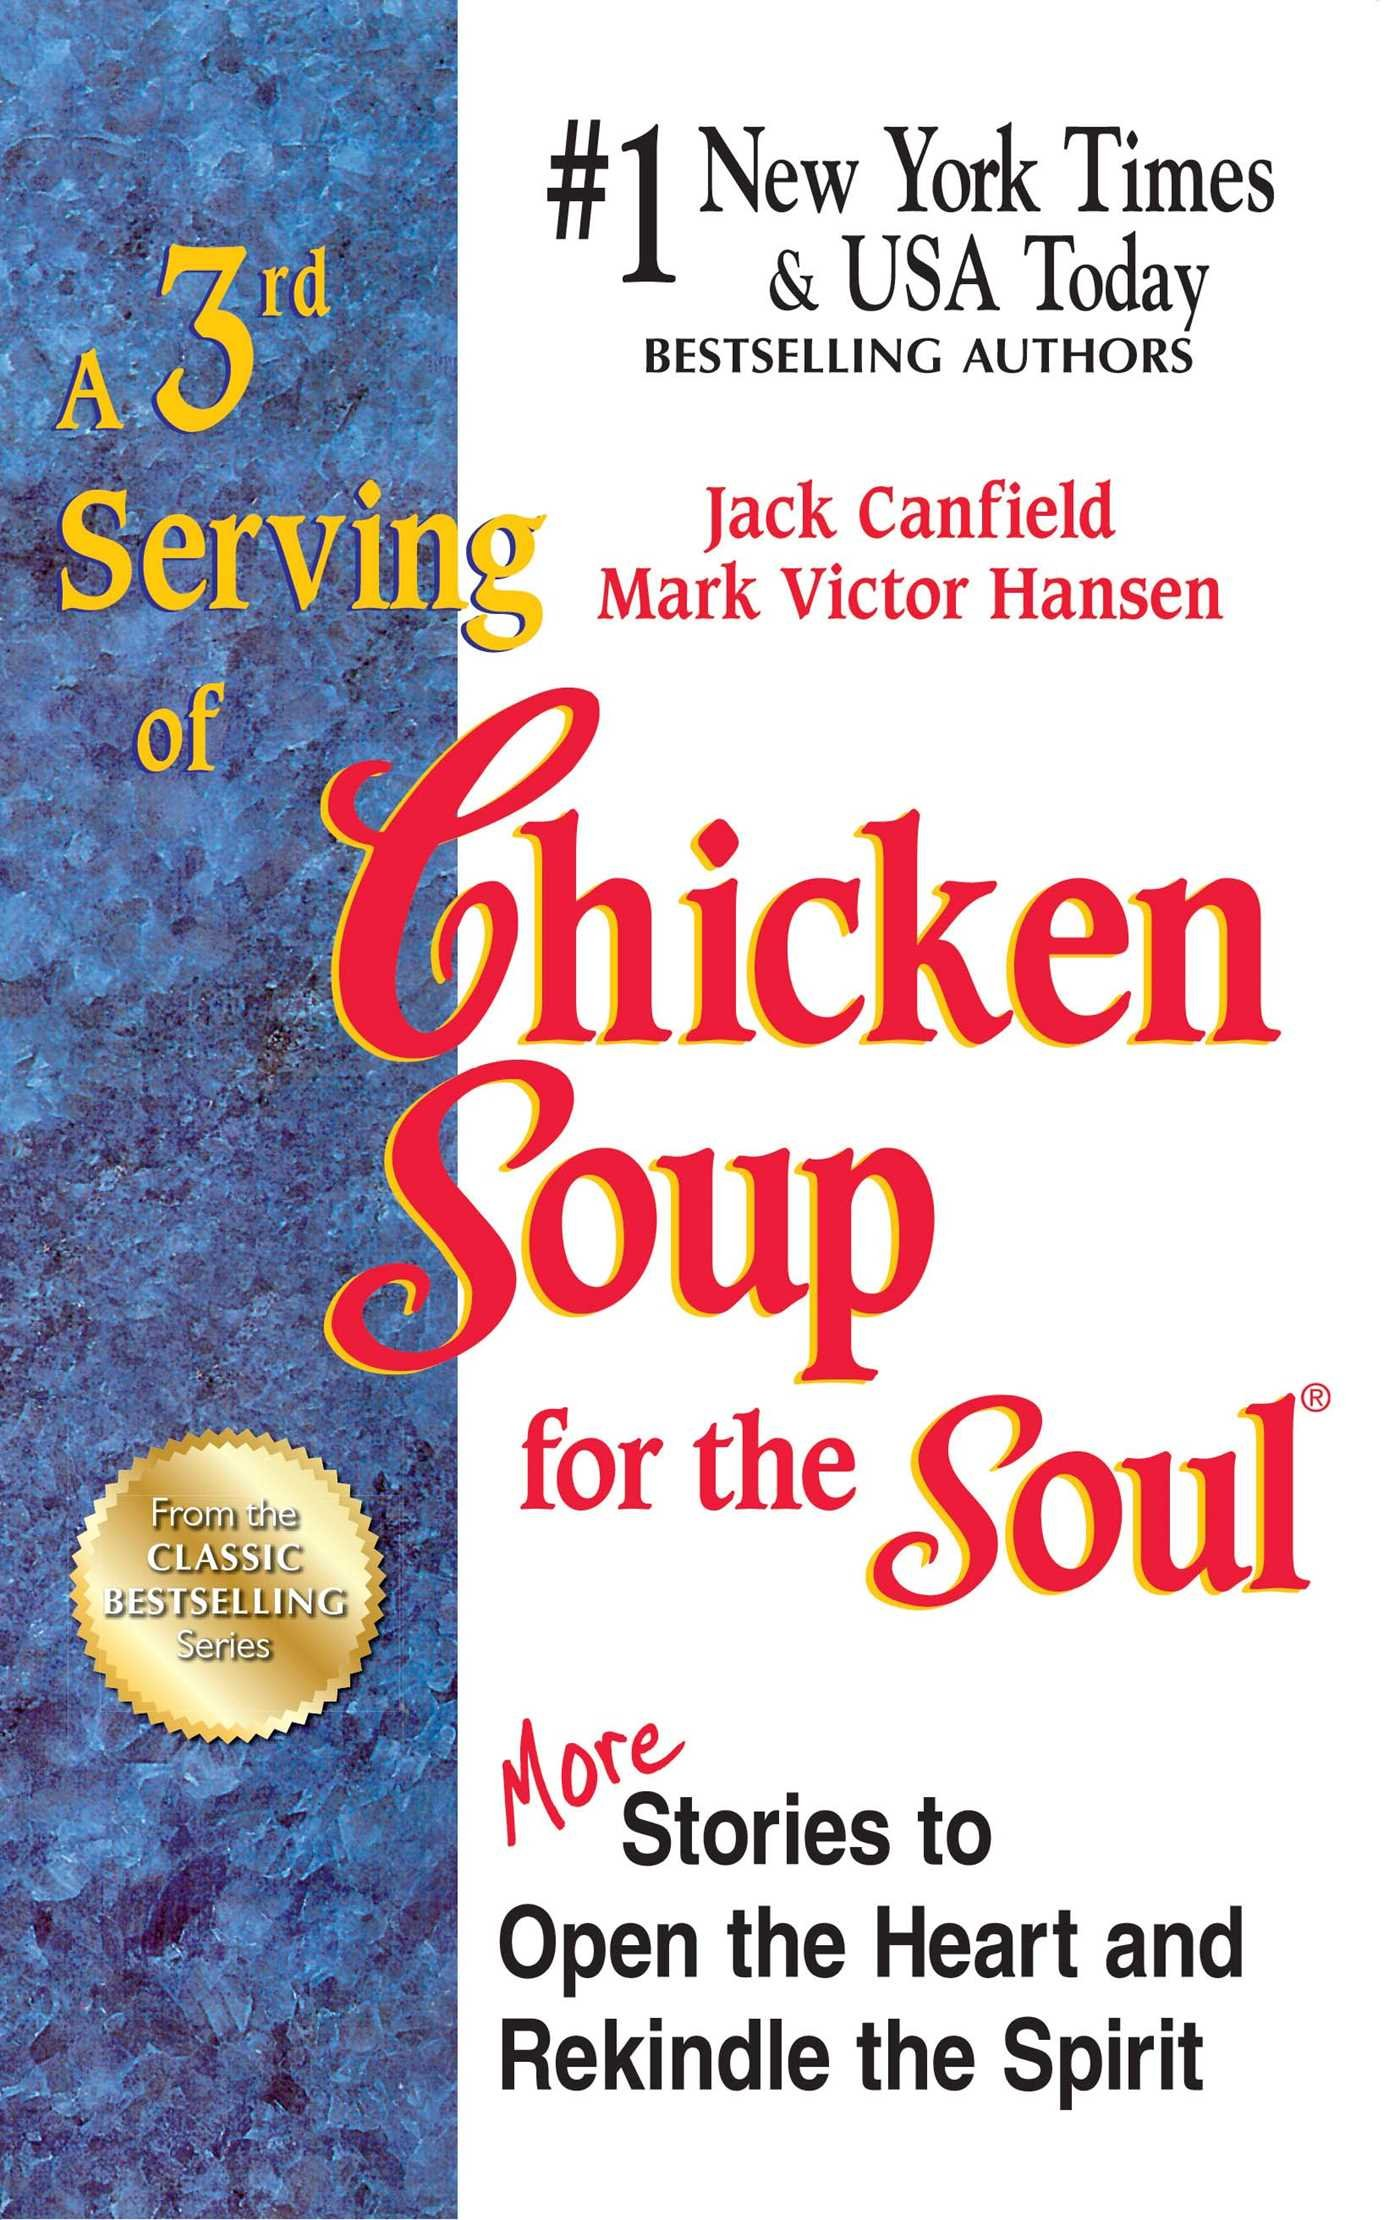 A 3rd Serving of Chicken Soup for the Soul: 101 More Stories to Open the Heart and Rekindle the Spirit PDF